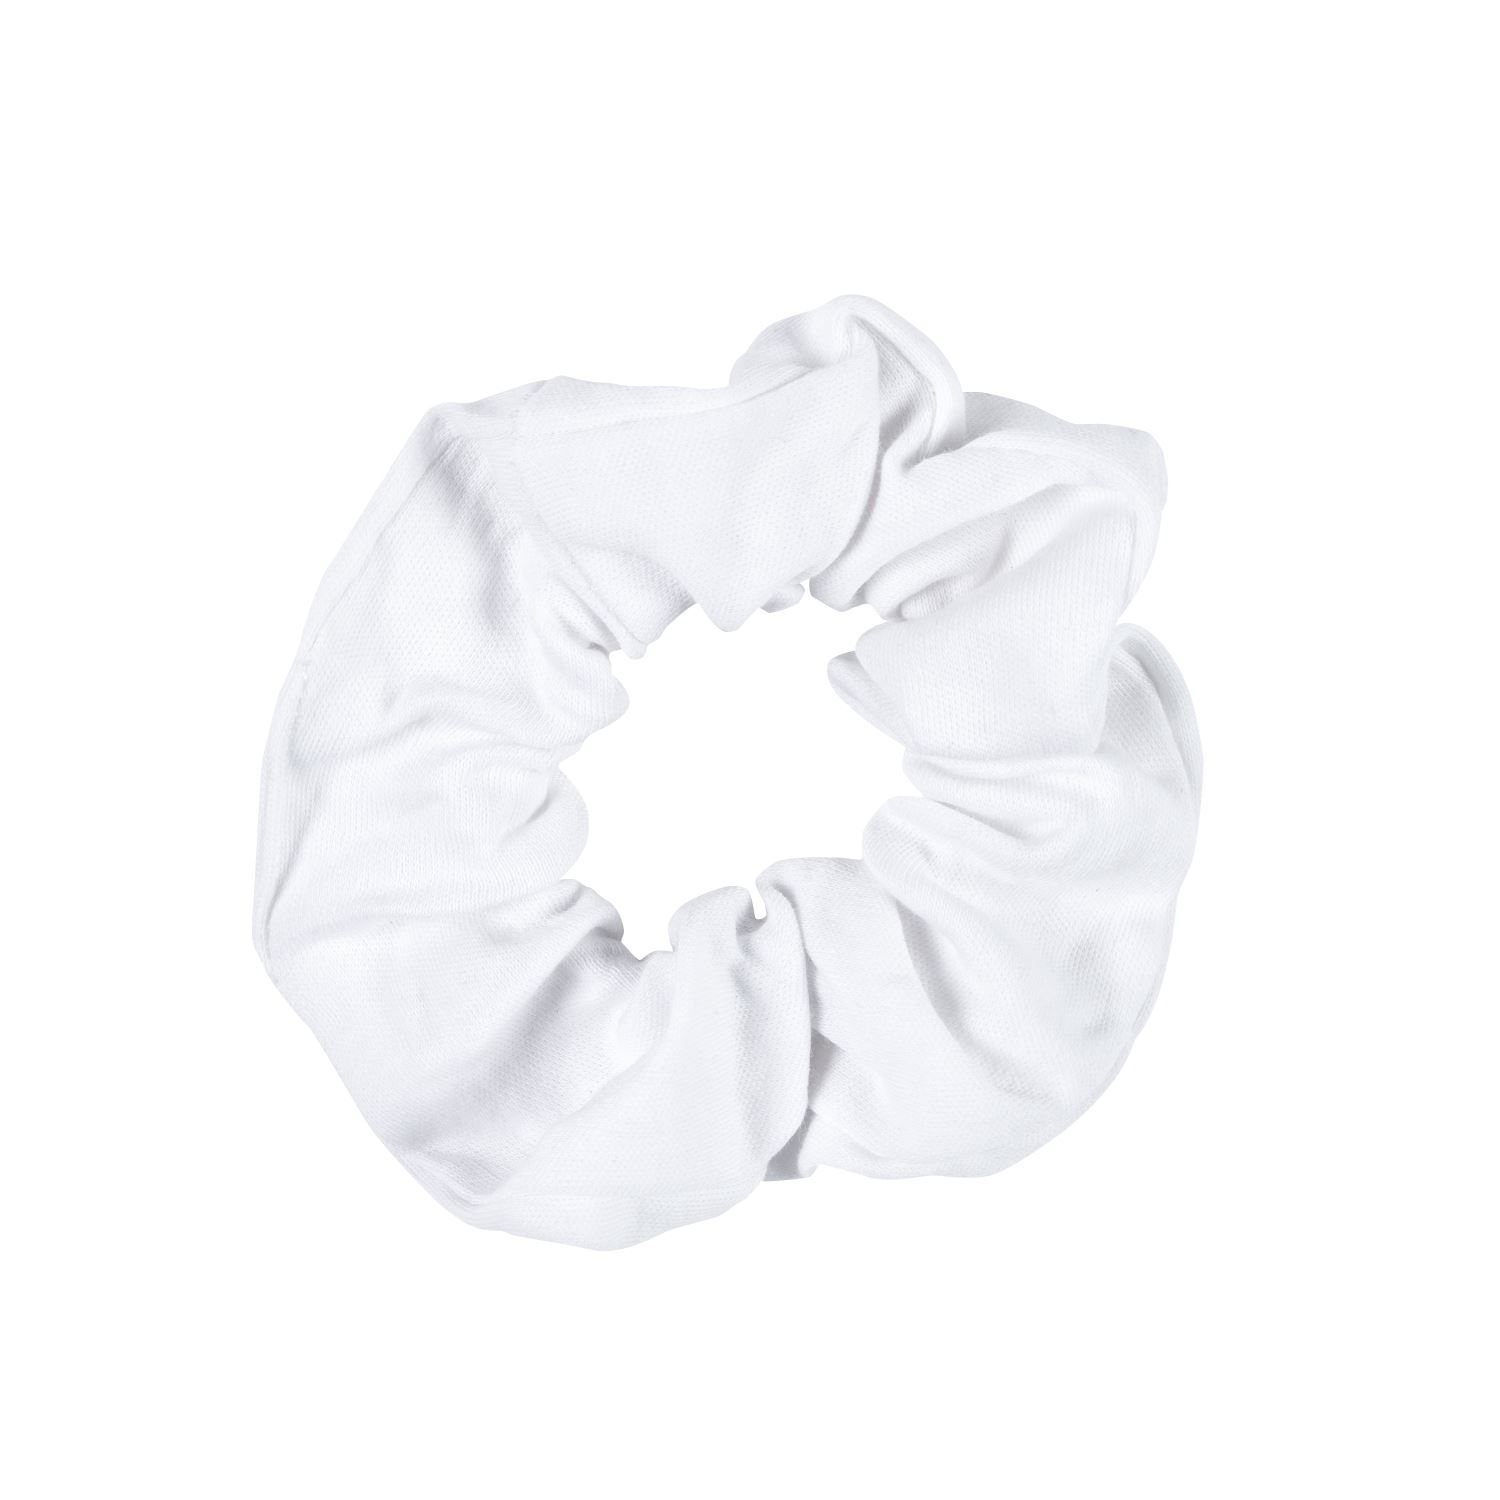 White Scrunchies 4 Pack contents